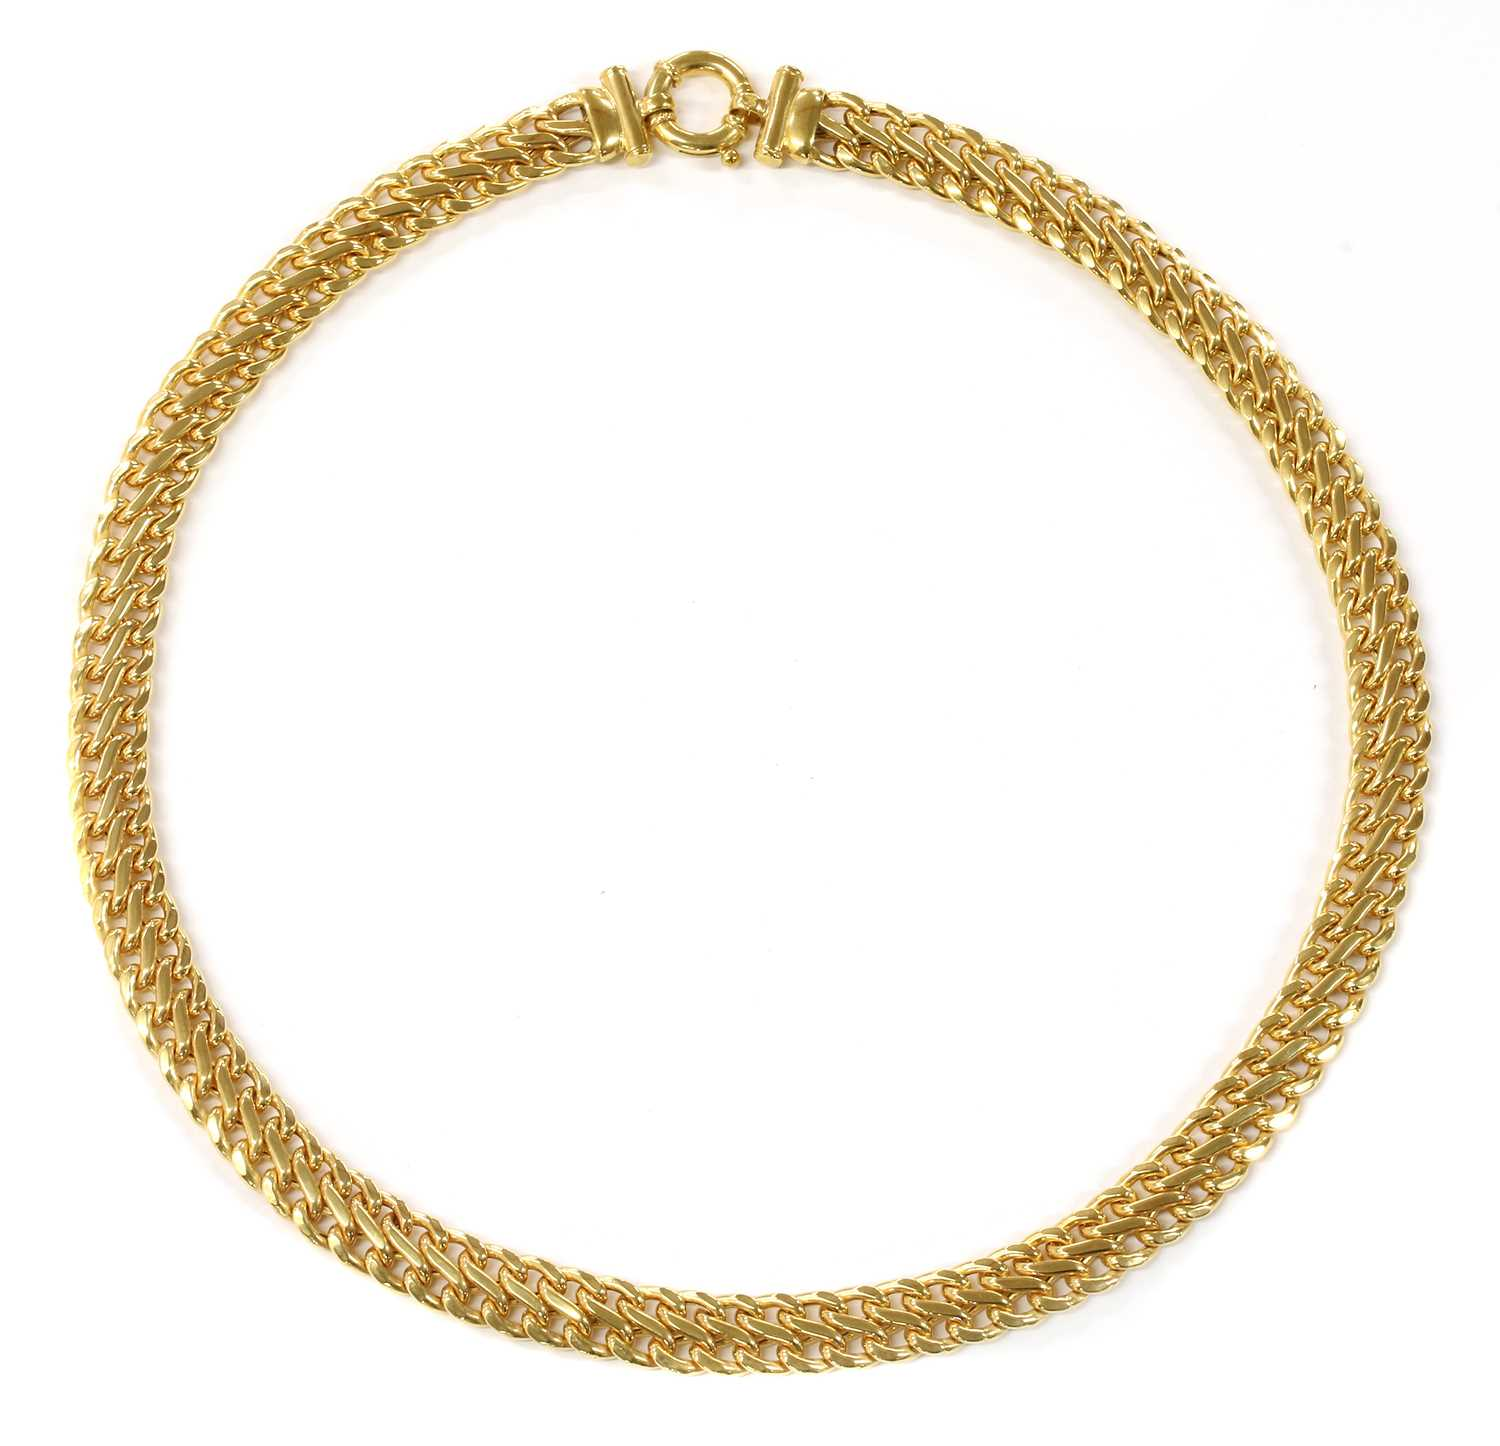 Lot 68 - A 9ct hollow figure of eight link necklace